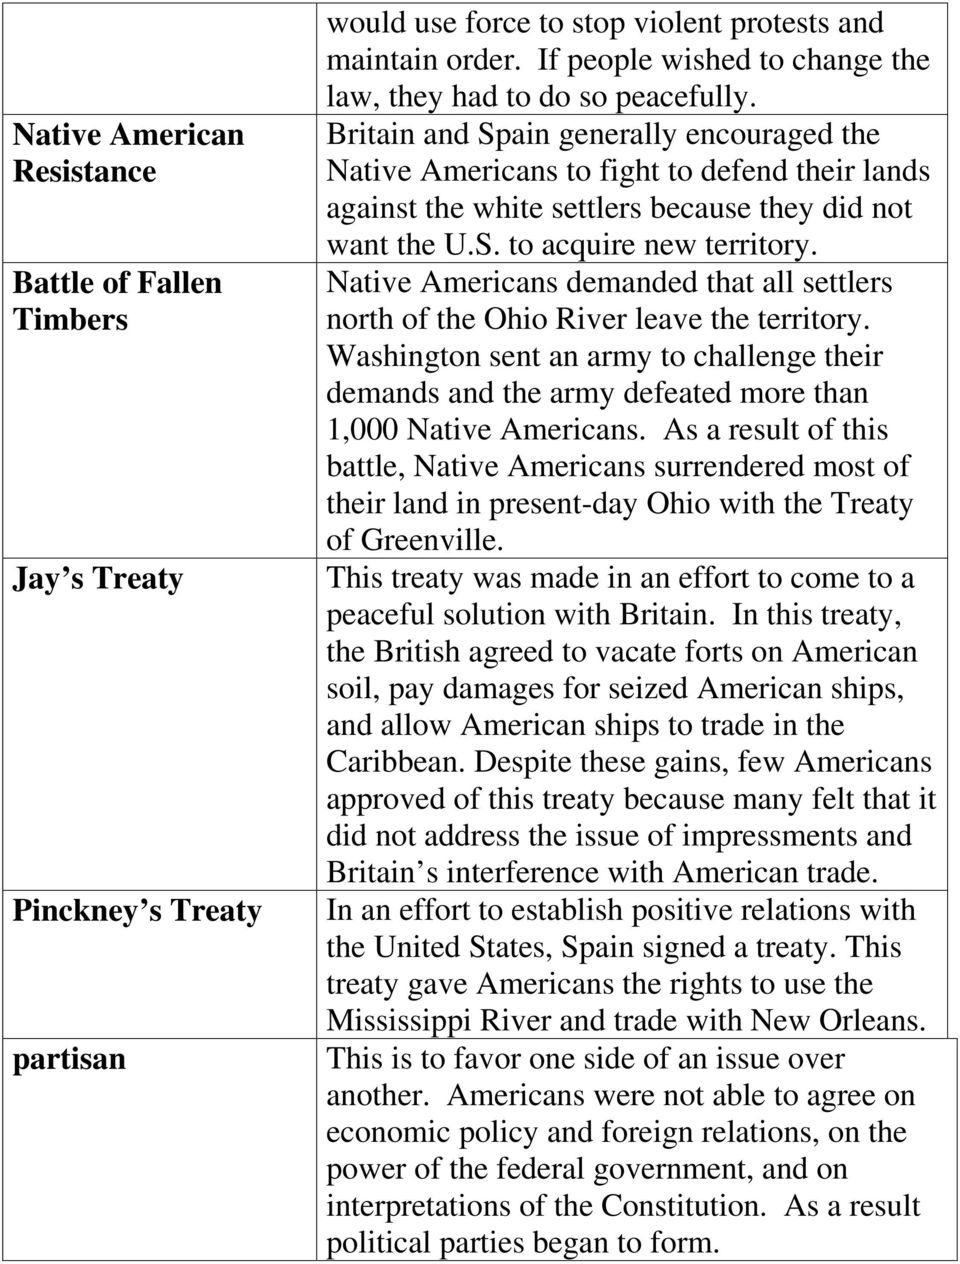 Britain and Spain generally encouraged the Native Americans to fight to defend their lands against the white settlers because they did not want the U.S. to acquire new territory.